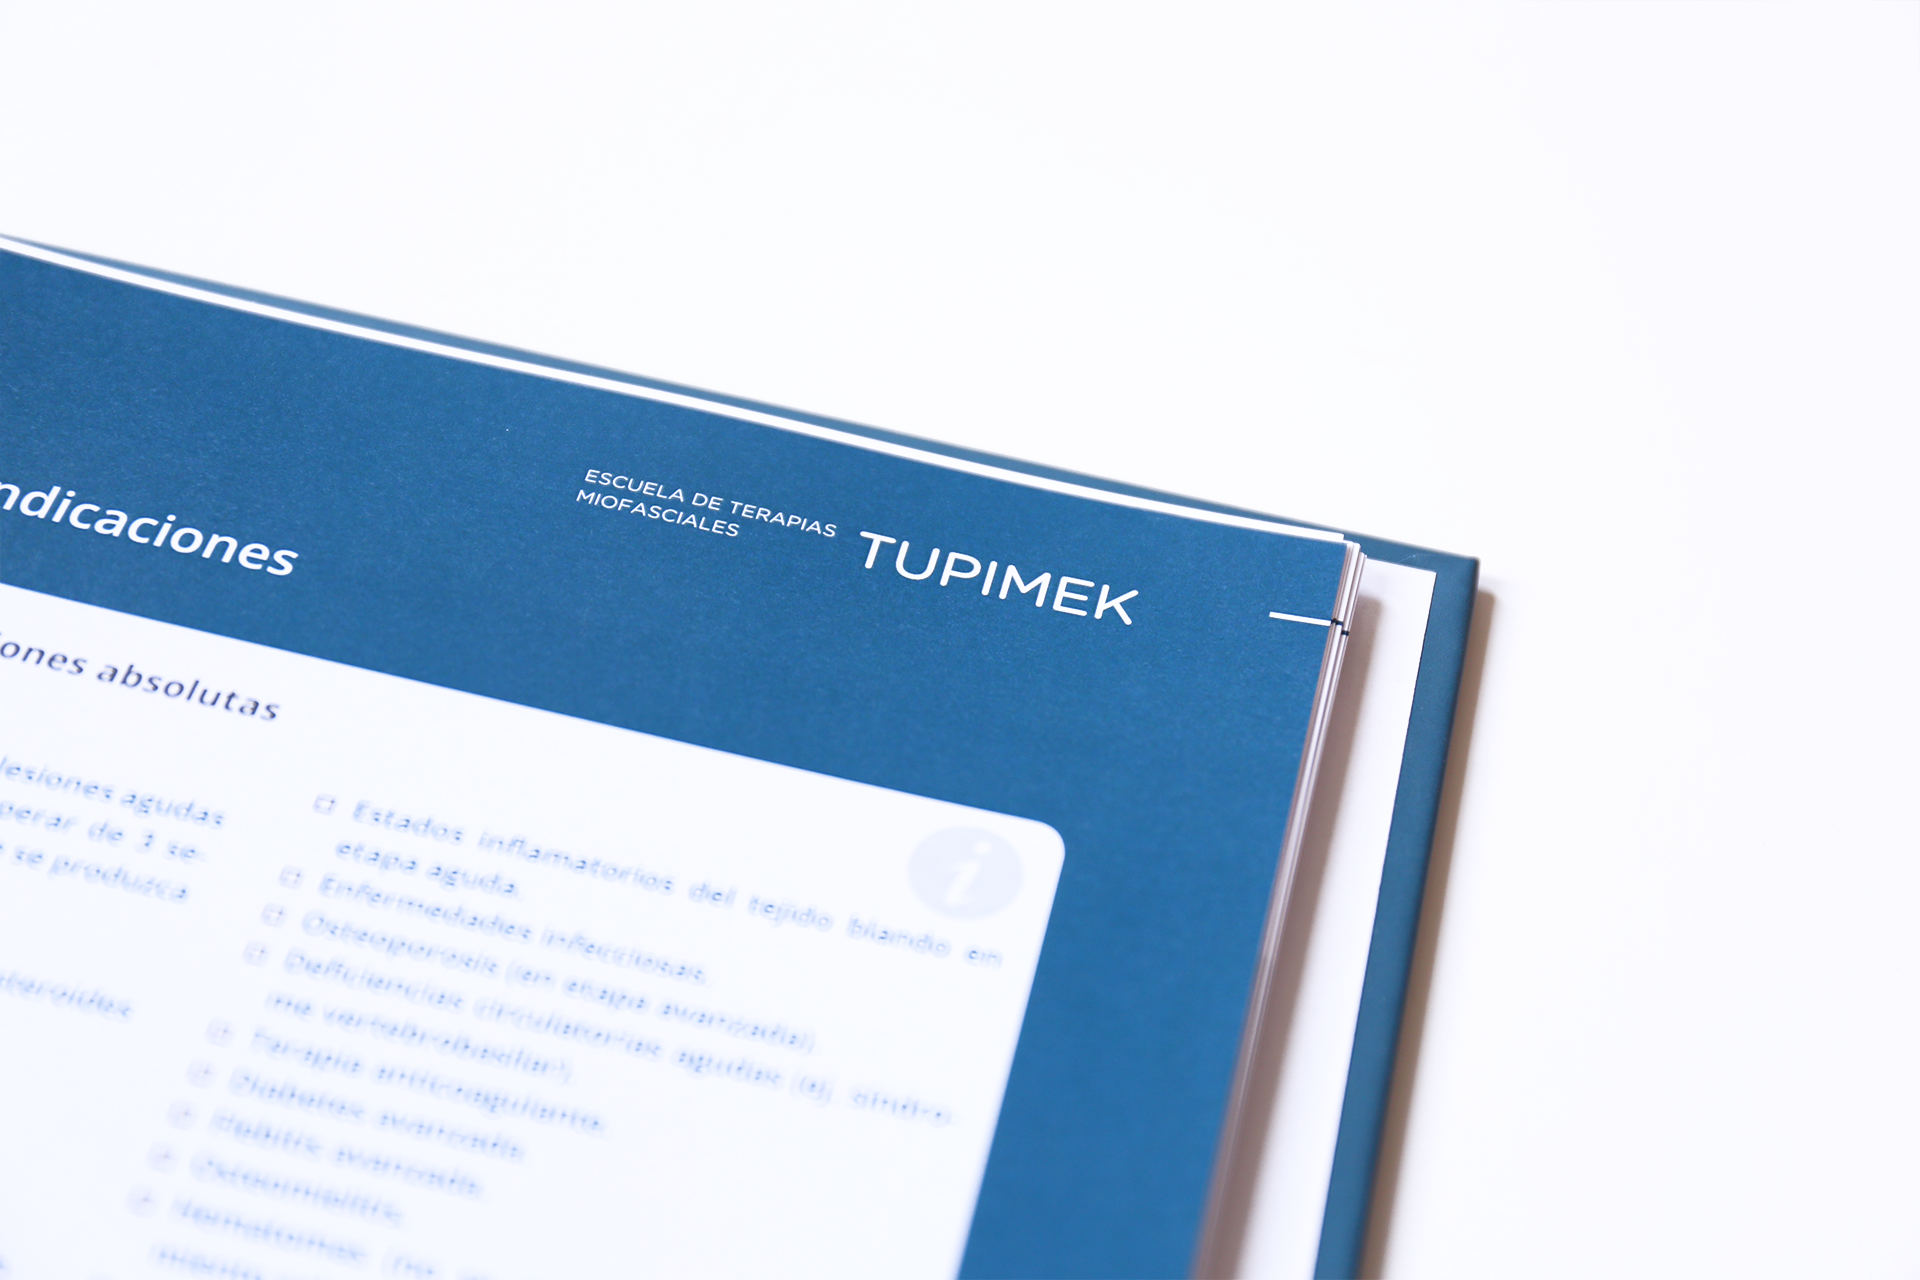 TUPIMEK_manual_detalle_02.png